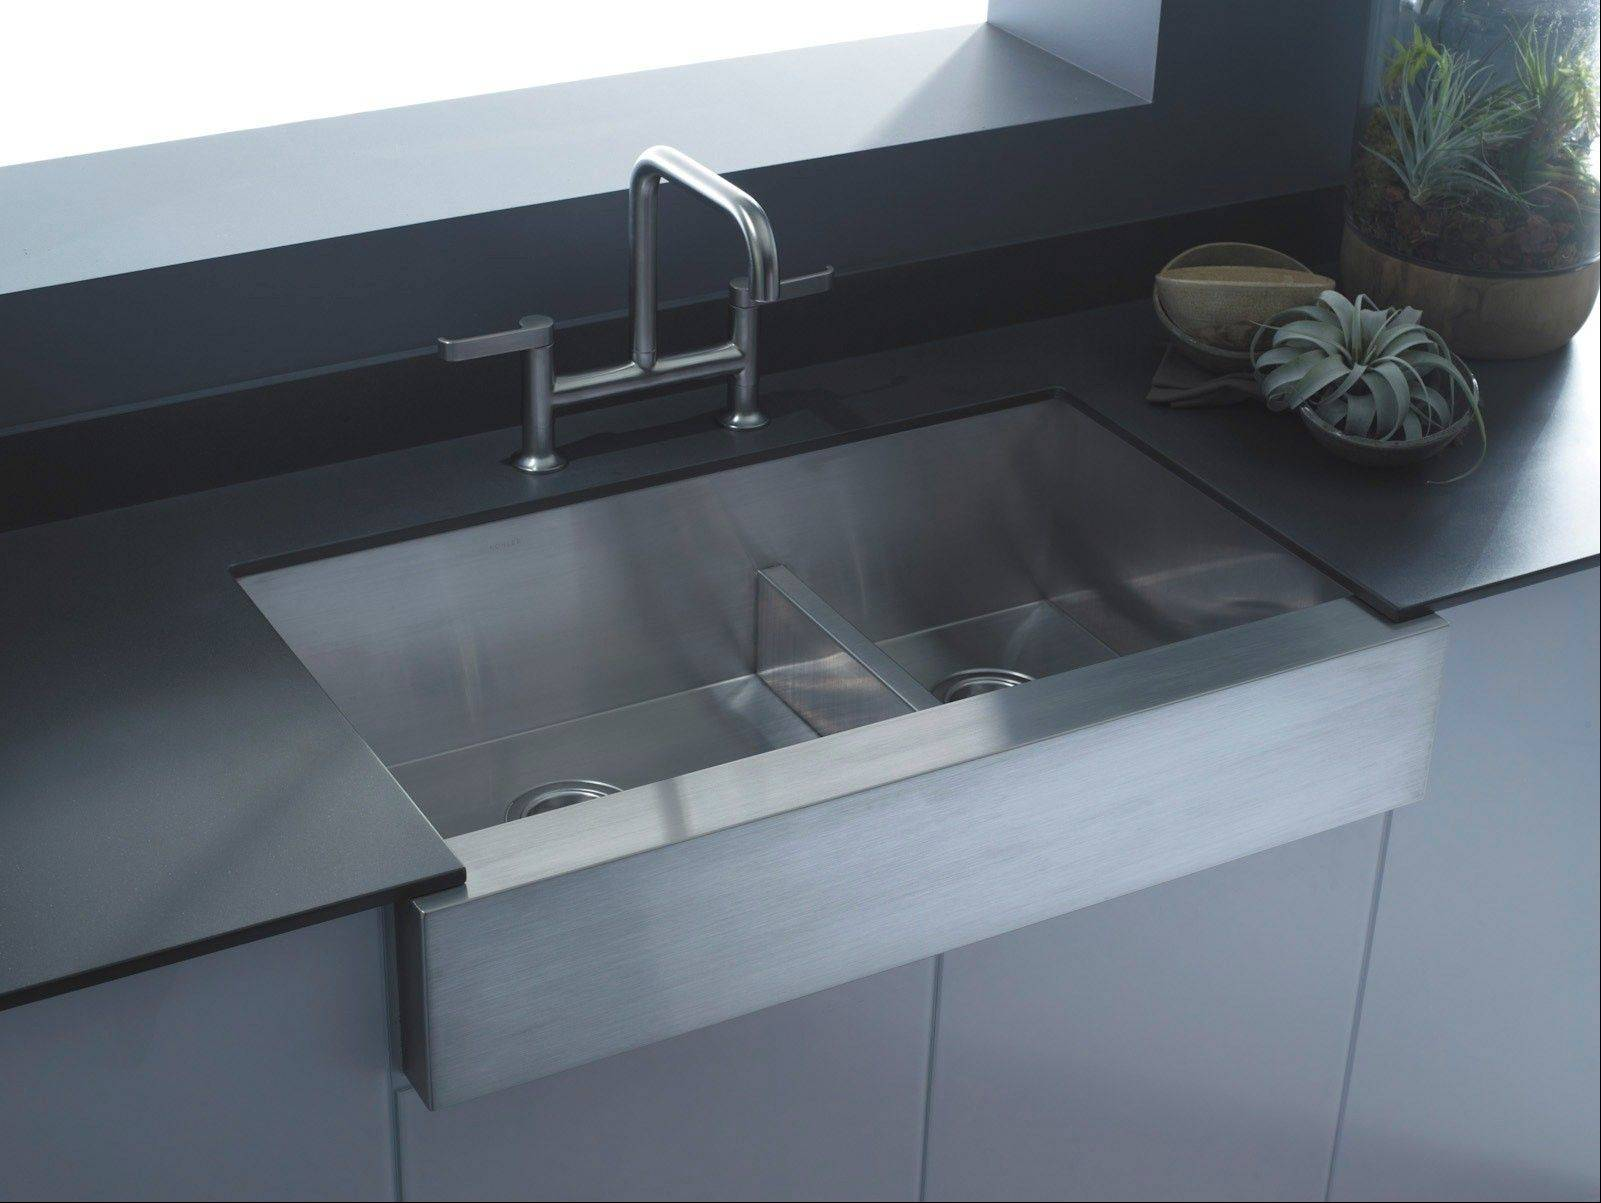 A smart-divide sink can be a good choice for any new kitchen.